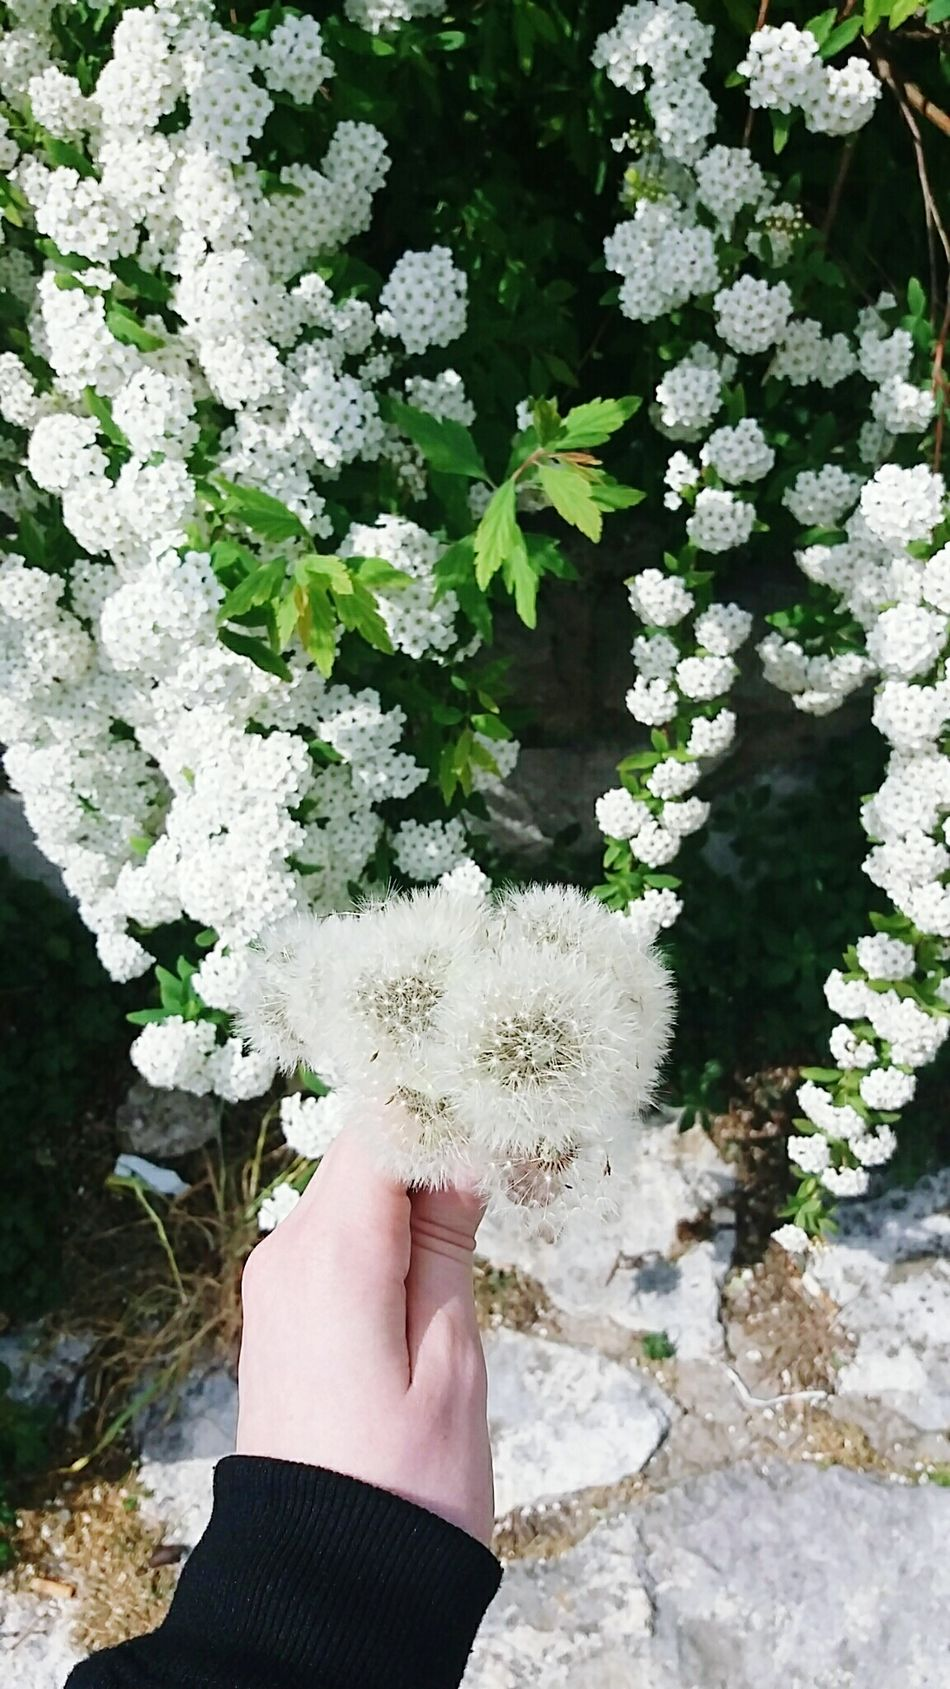 Allwhite Flowers Nature Outdoors